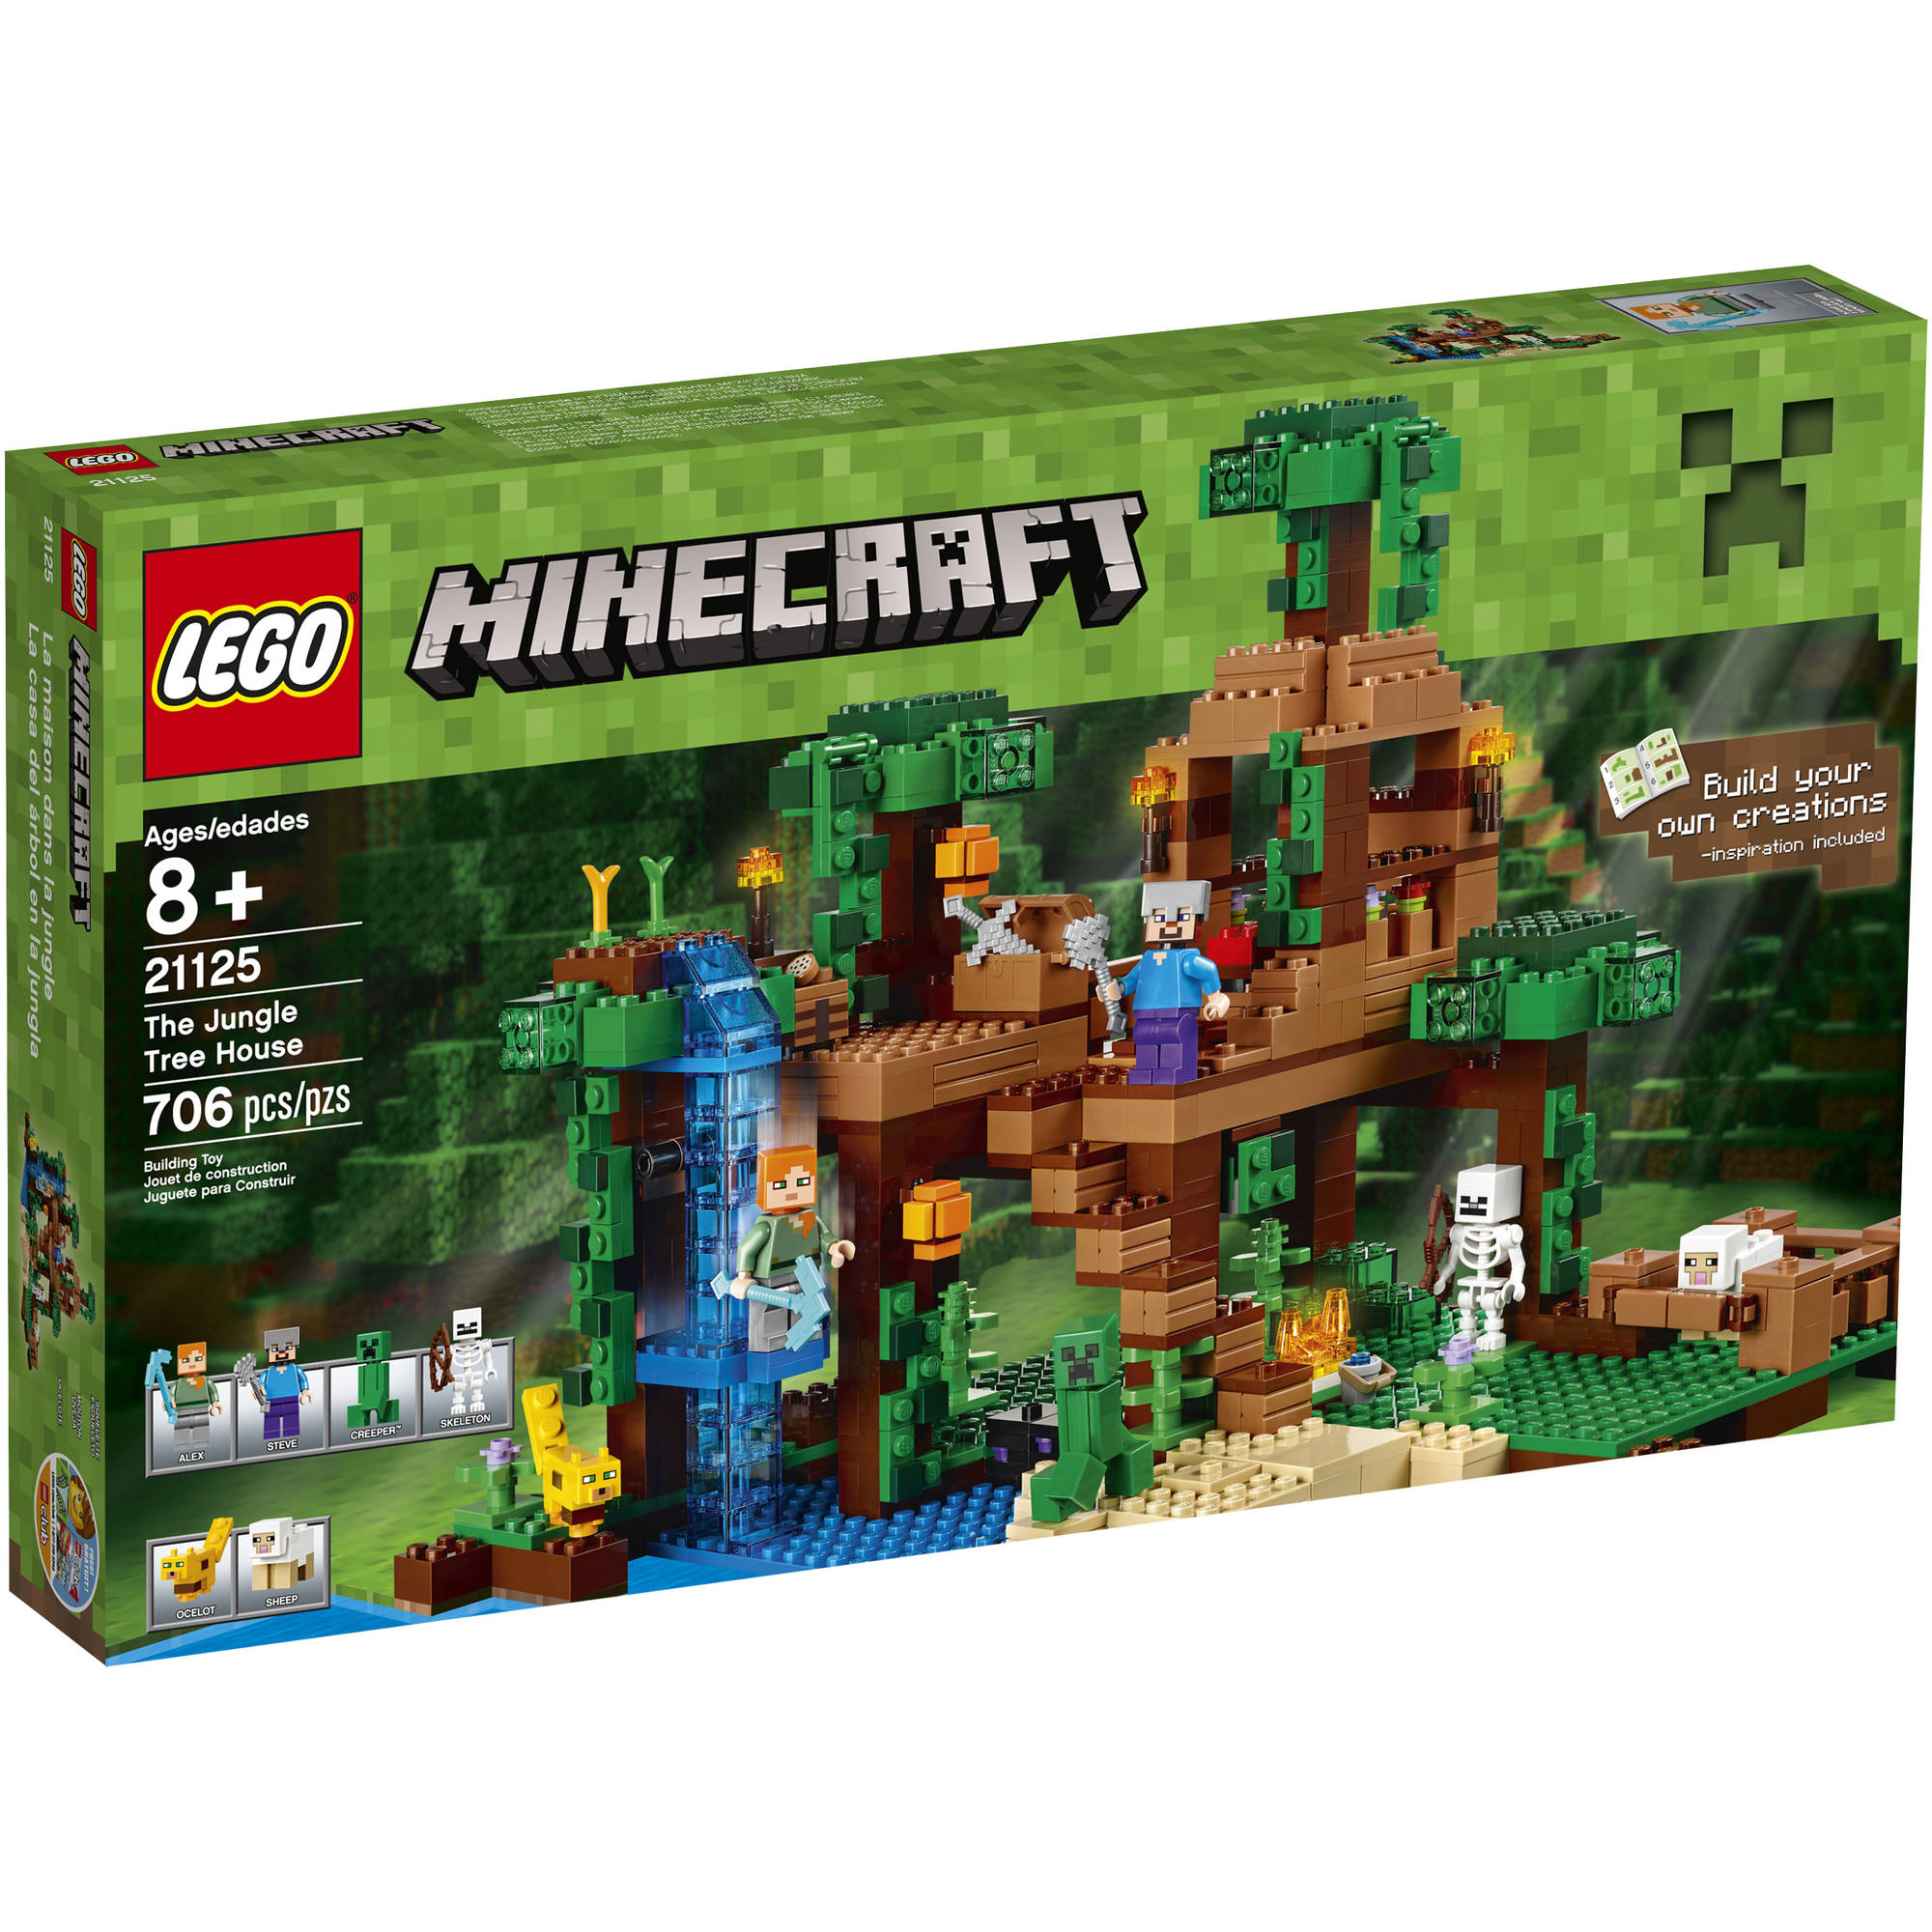 LEGO Minecraft The Jungle Tree House, 21125